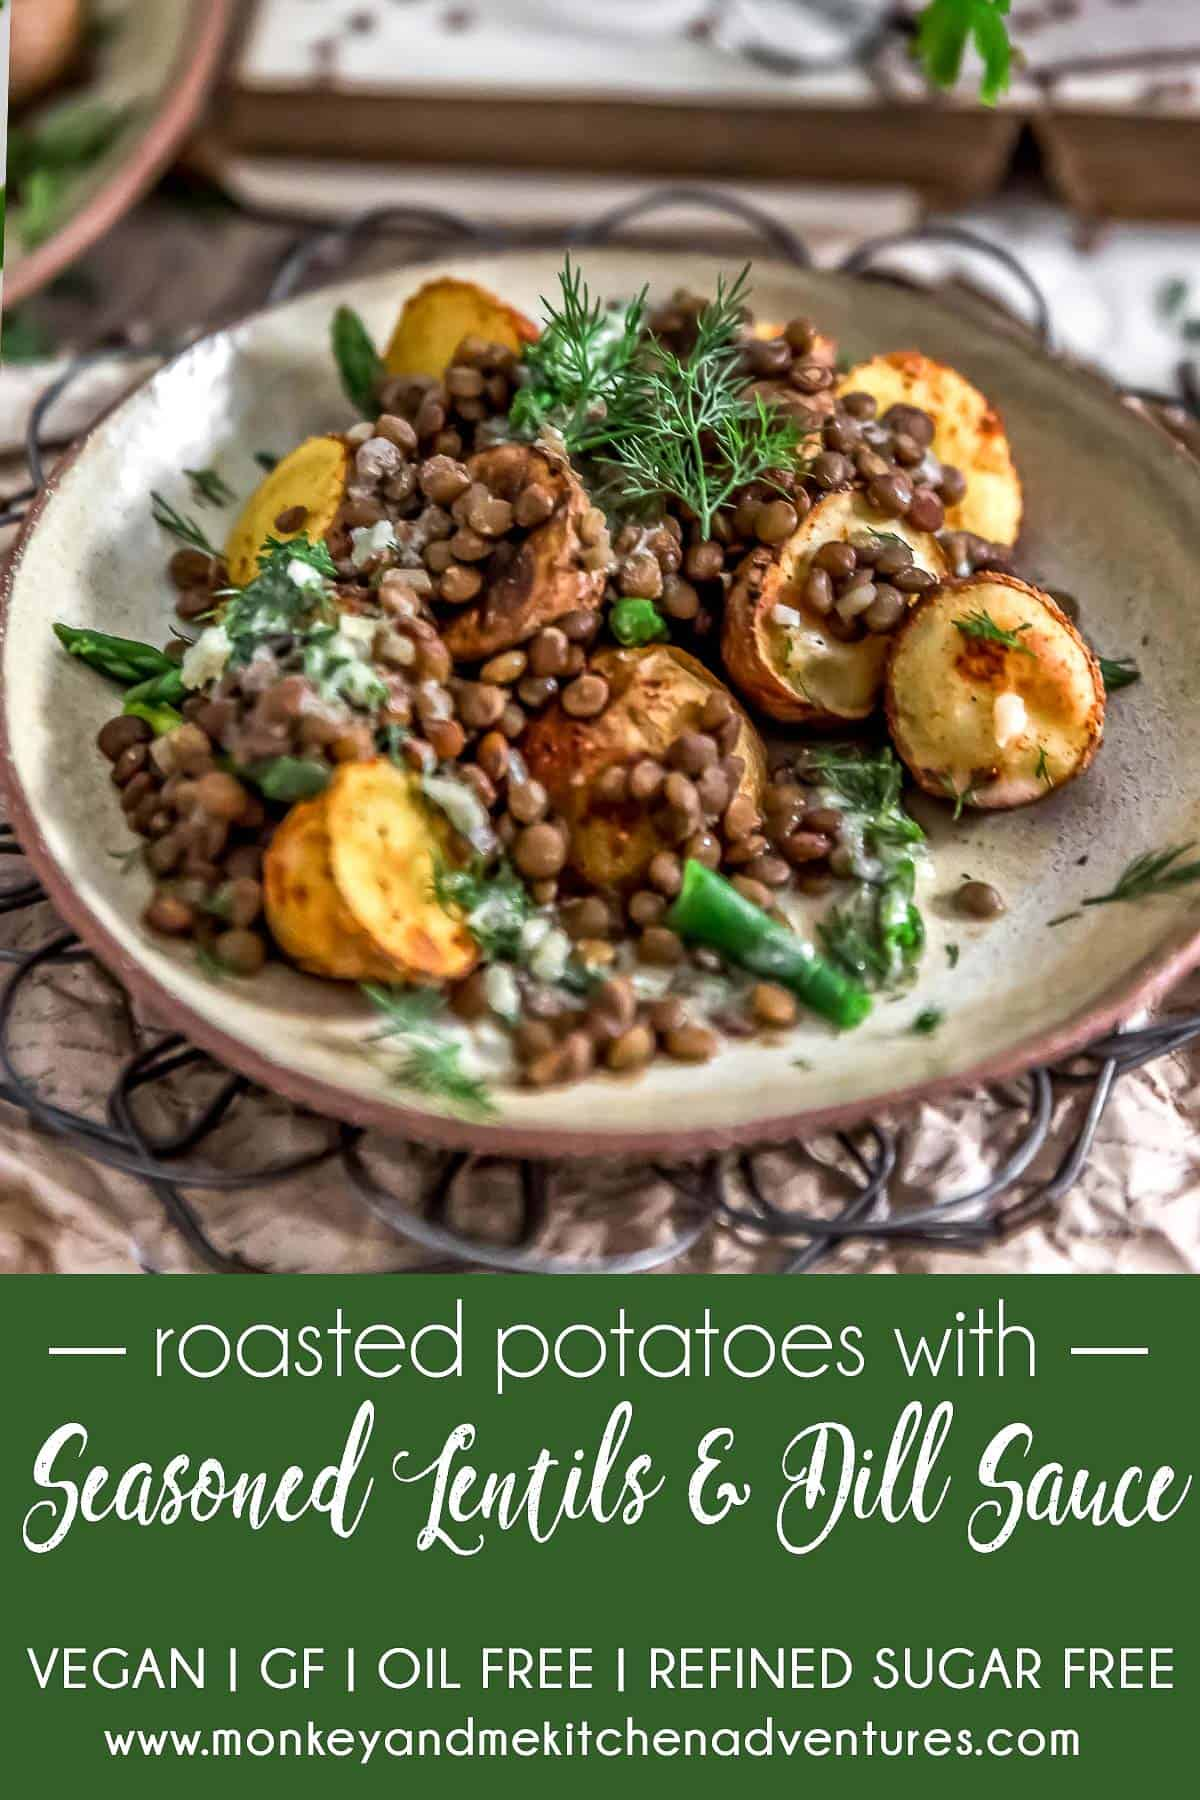 Roasted Potatoes with Seasoned Lentils and Dill Sauce with text description